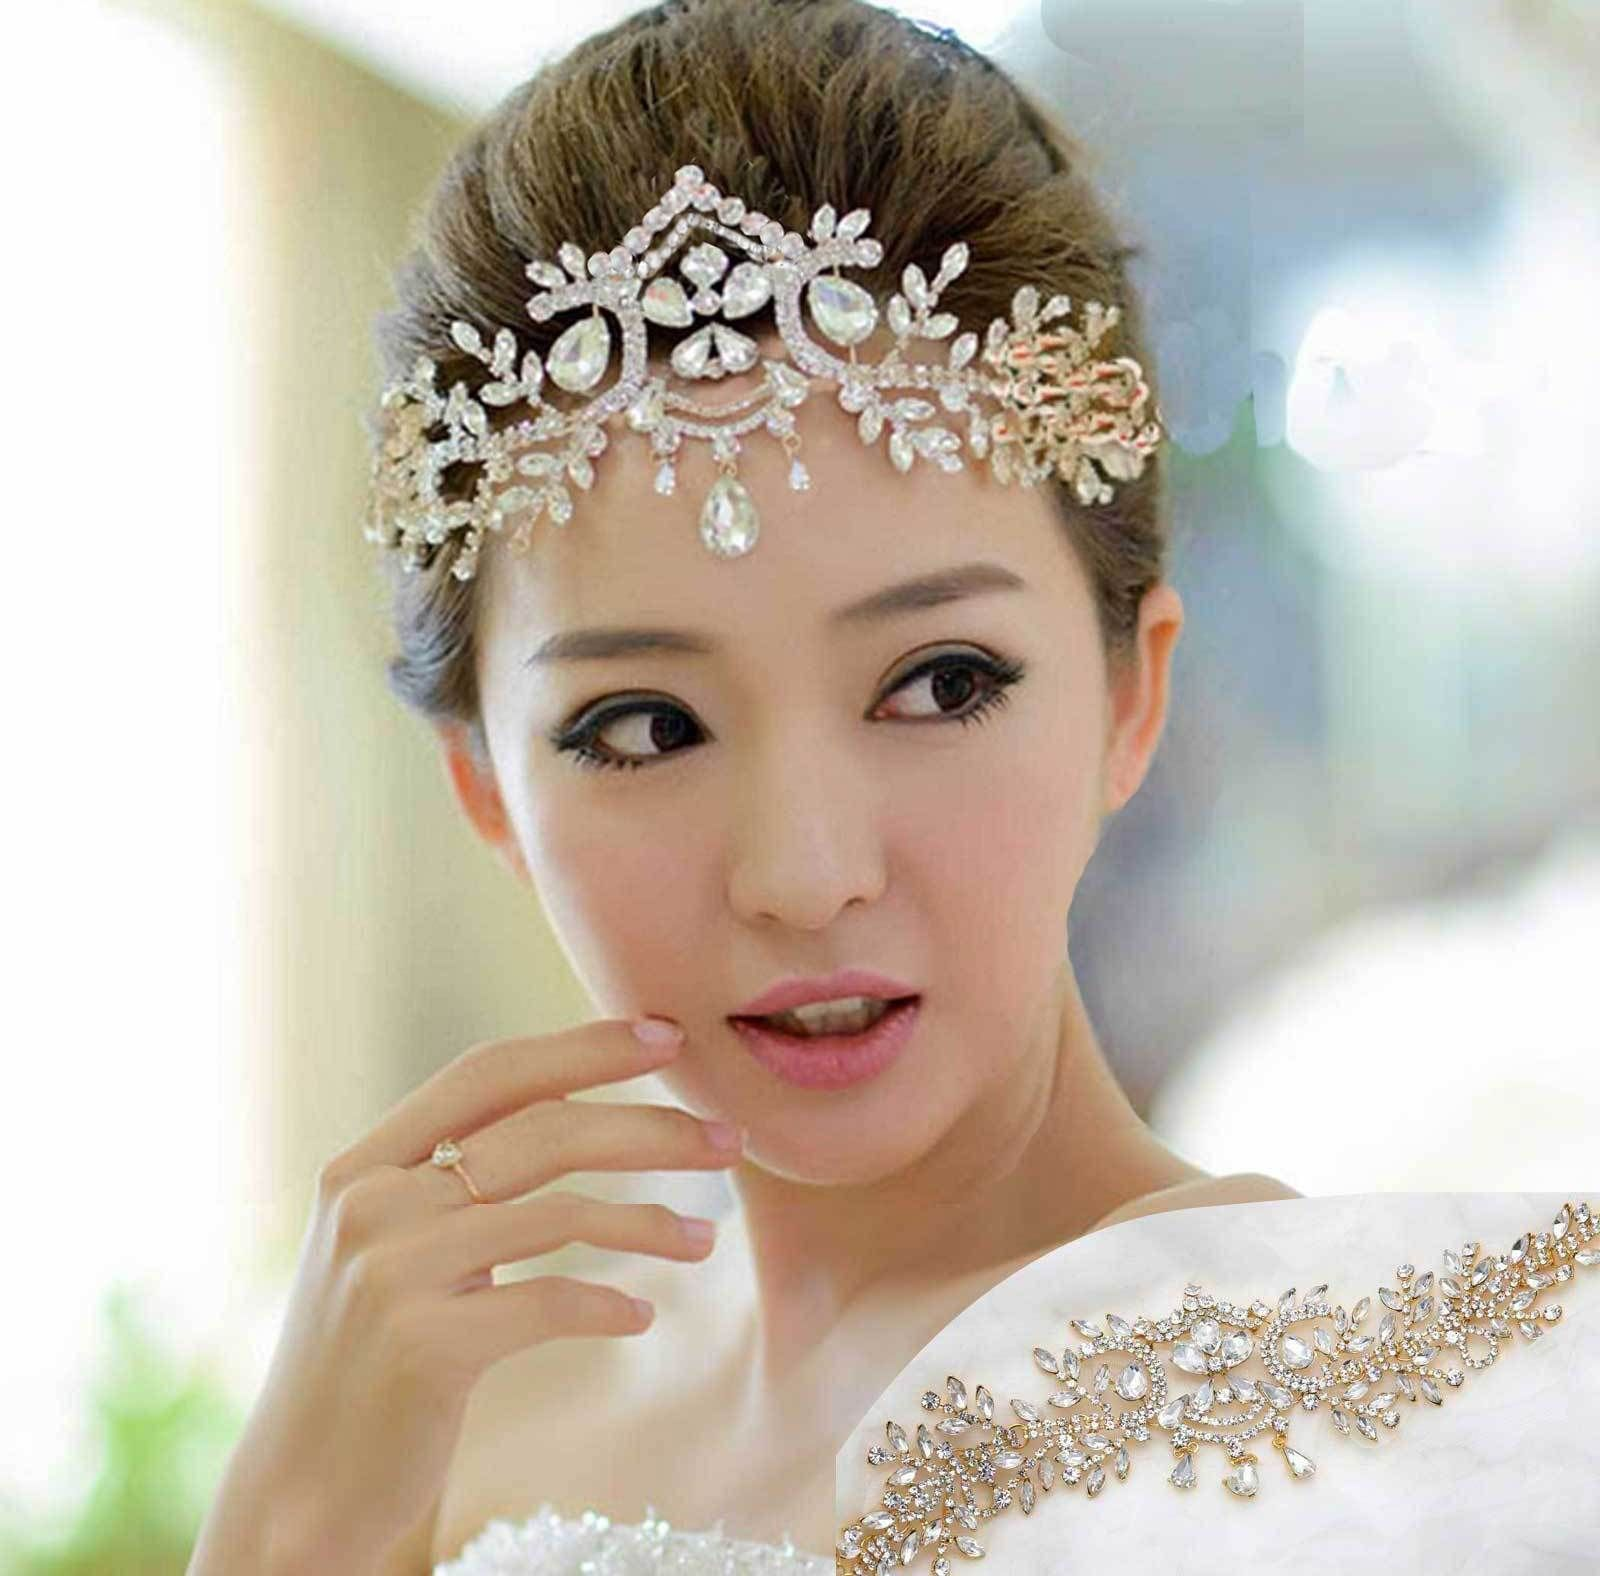 hair styling accessories #ebay #fashion | products